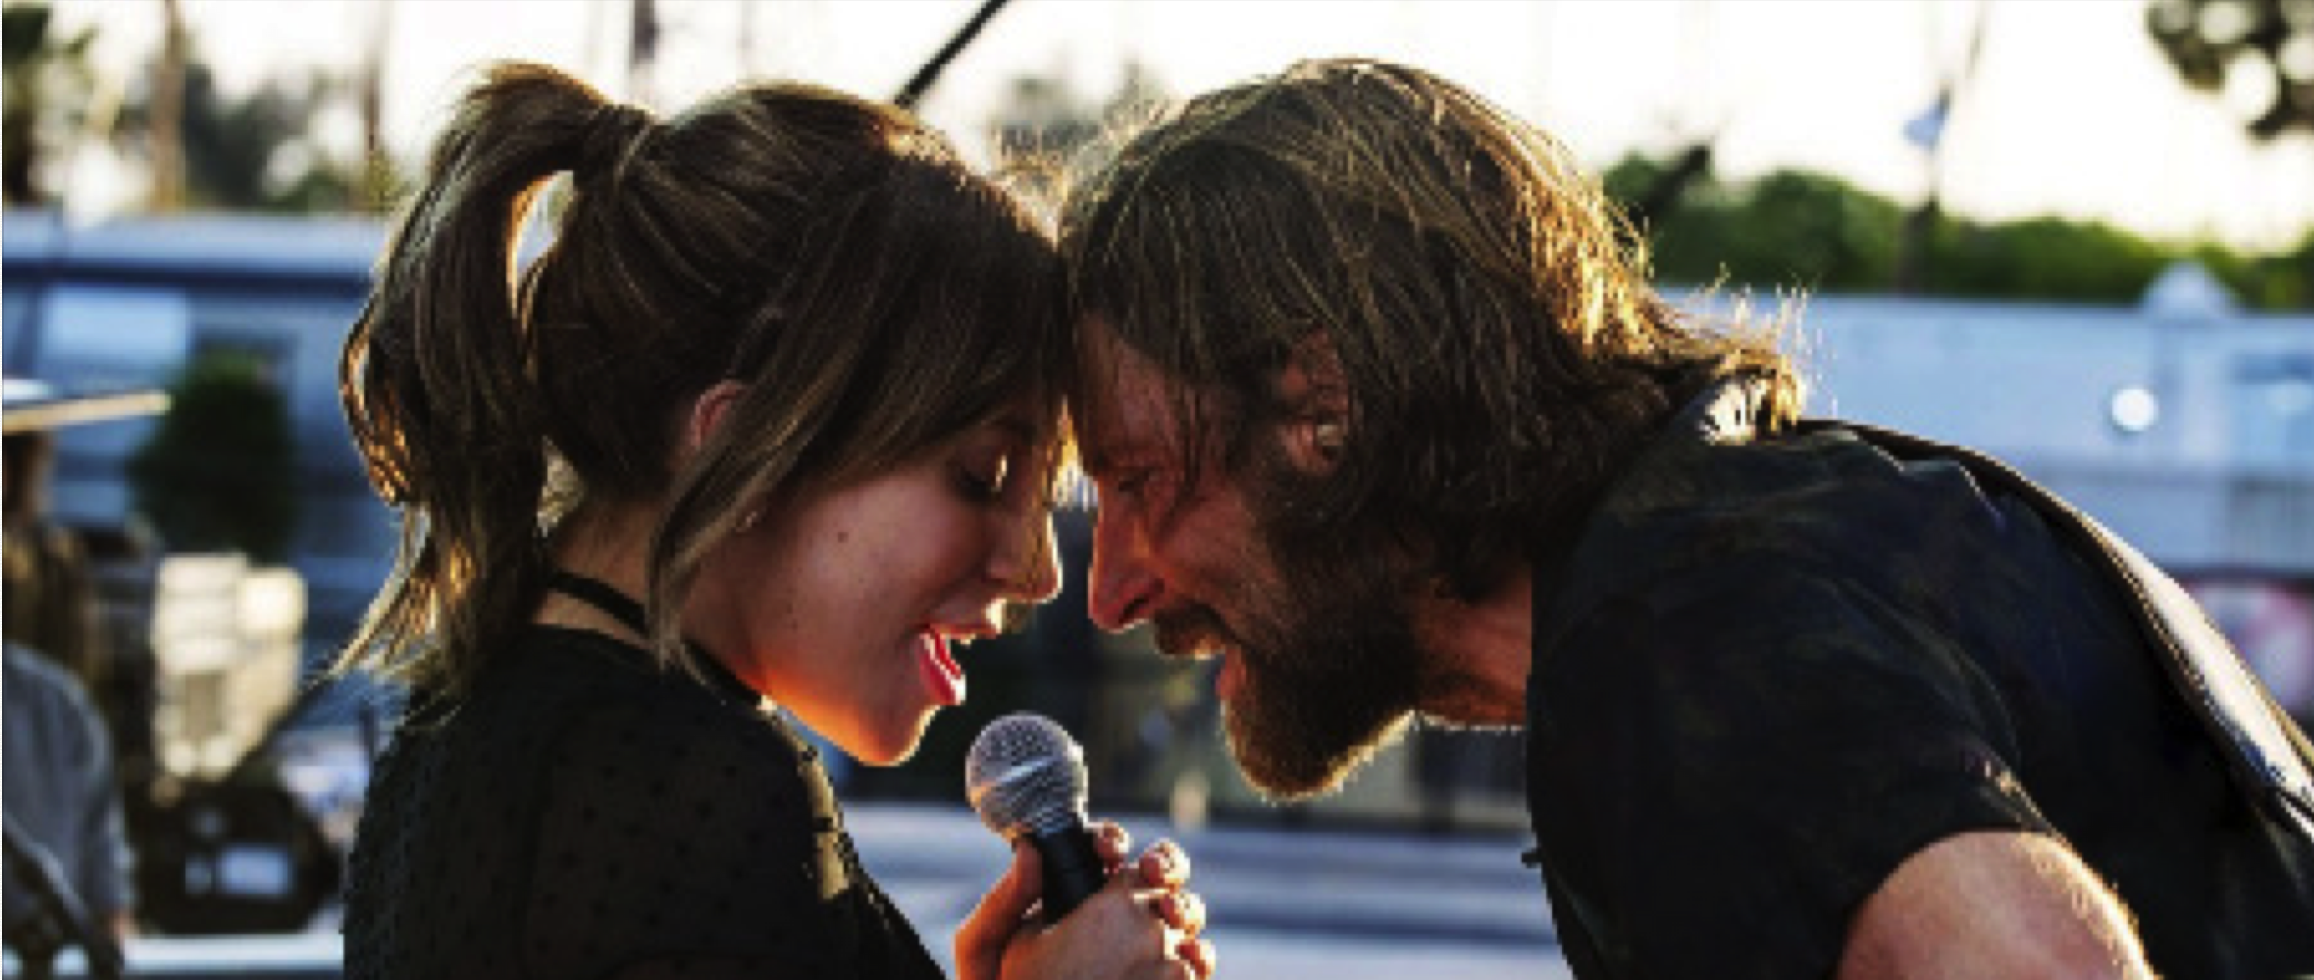 The Top Five Films of TIFF 2018